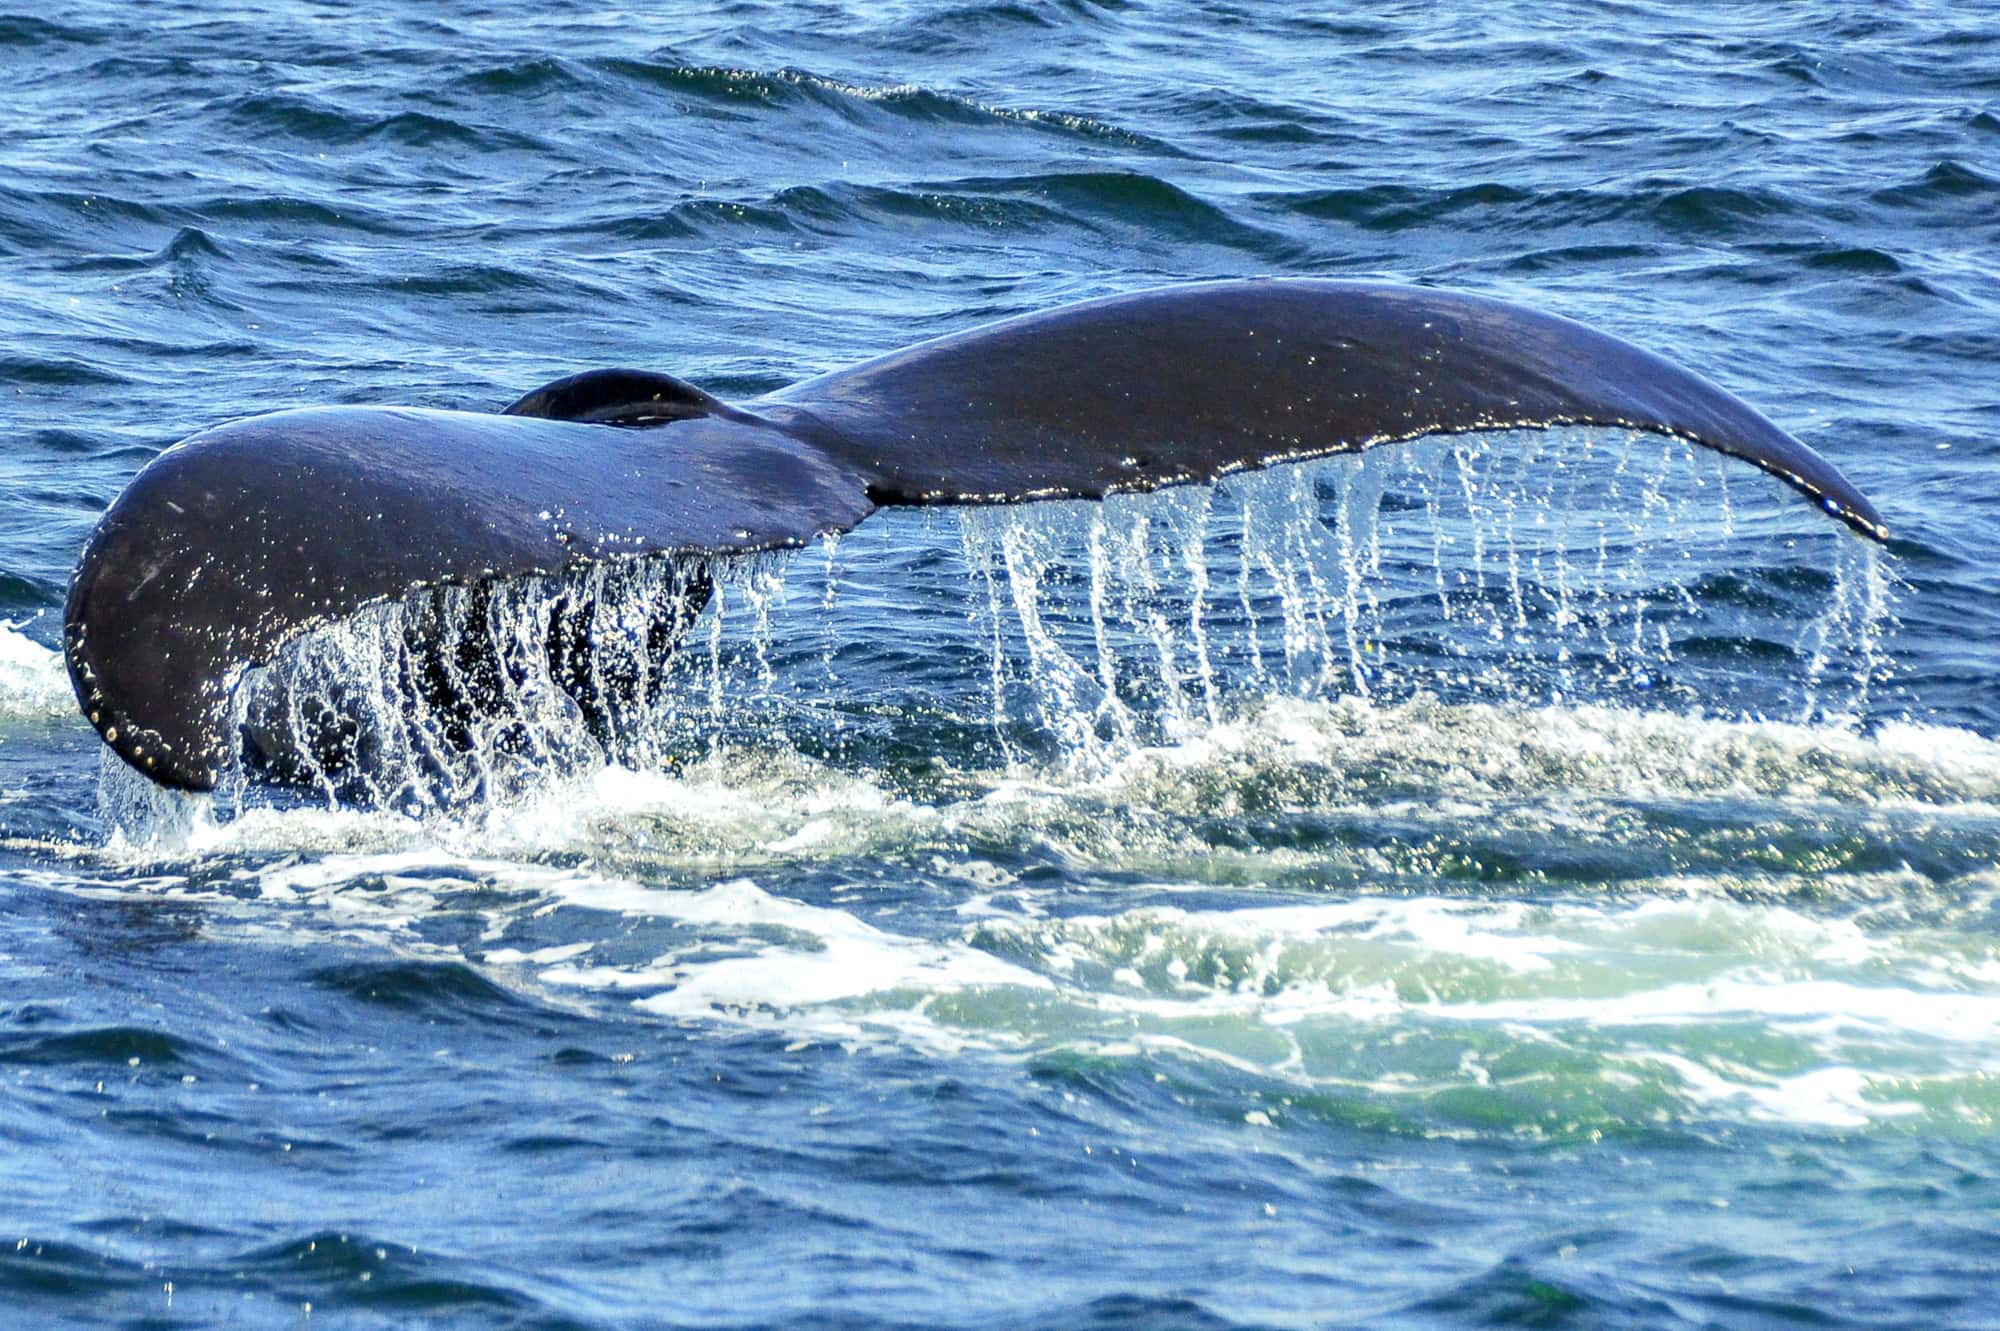 Humpback Whale's tail as he takes a dive, seen from behind, water dripping off tail